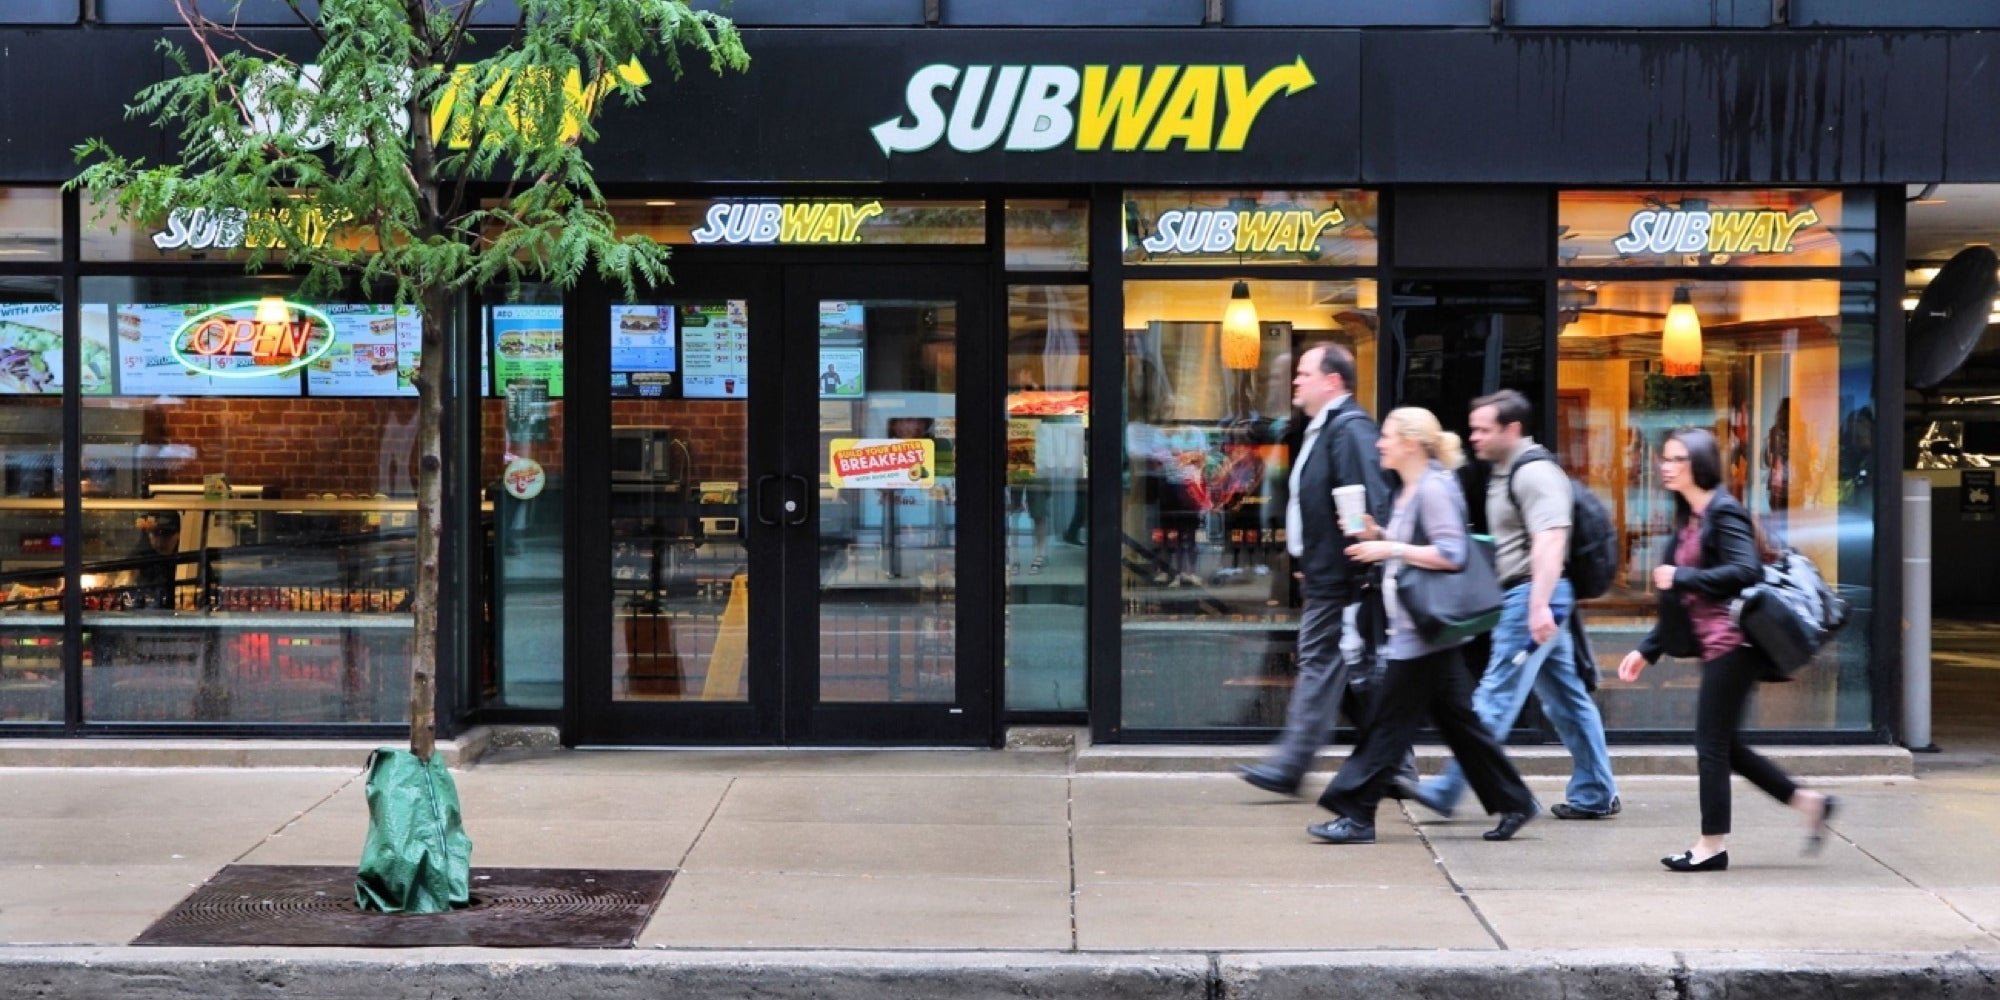 Here Are 6 Things You Could Buy for the Price of One Subway Franchise